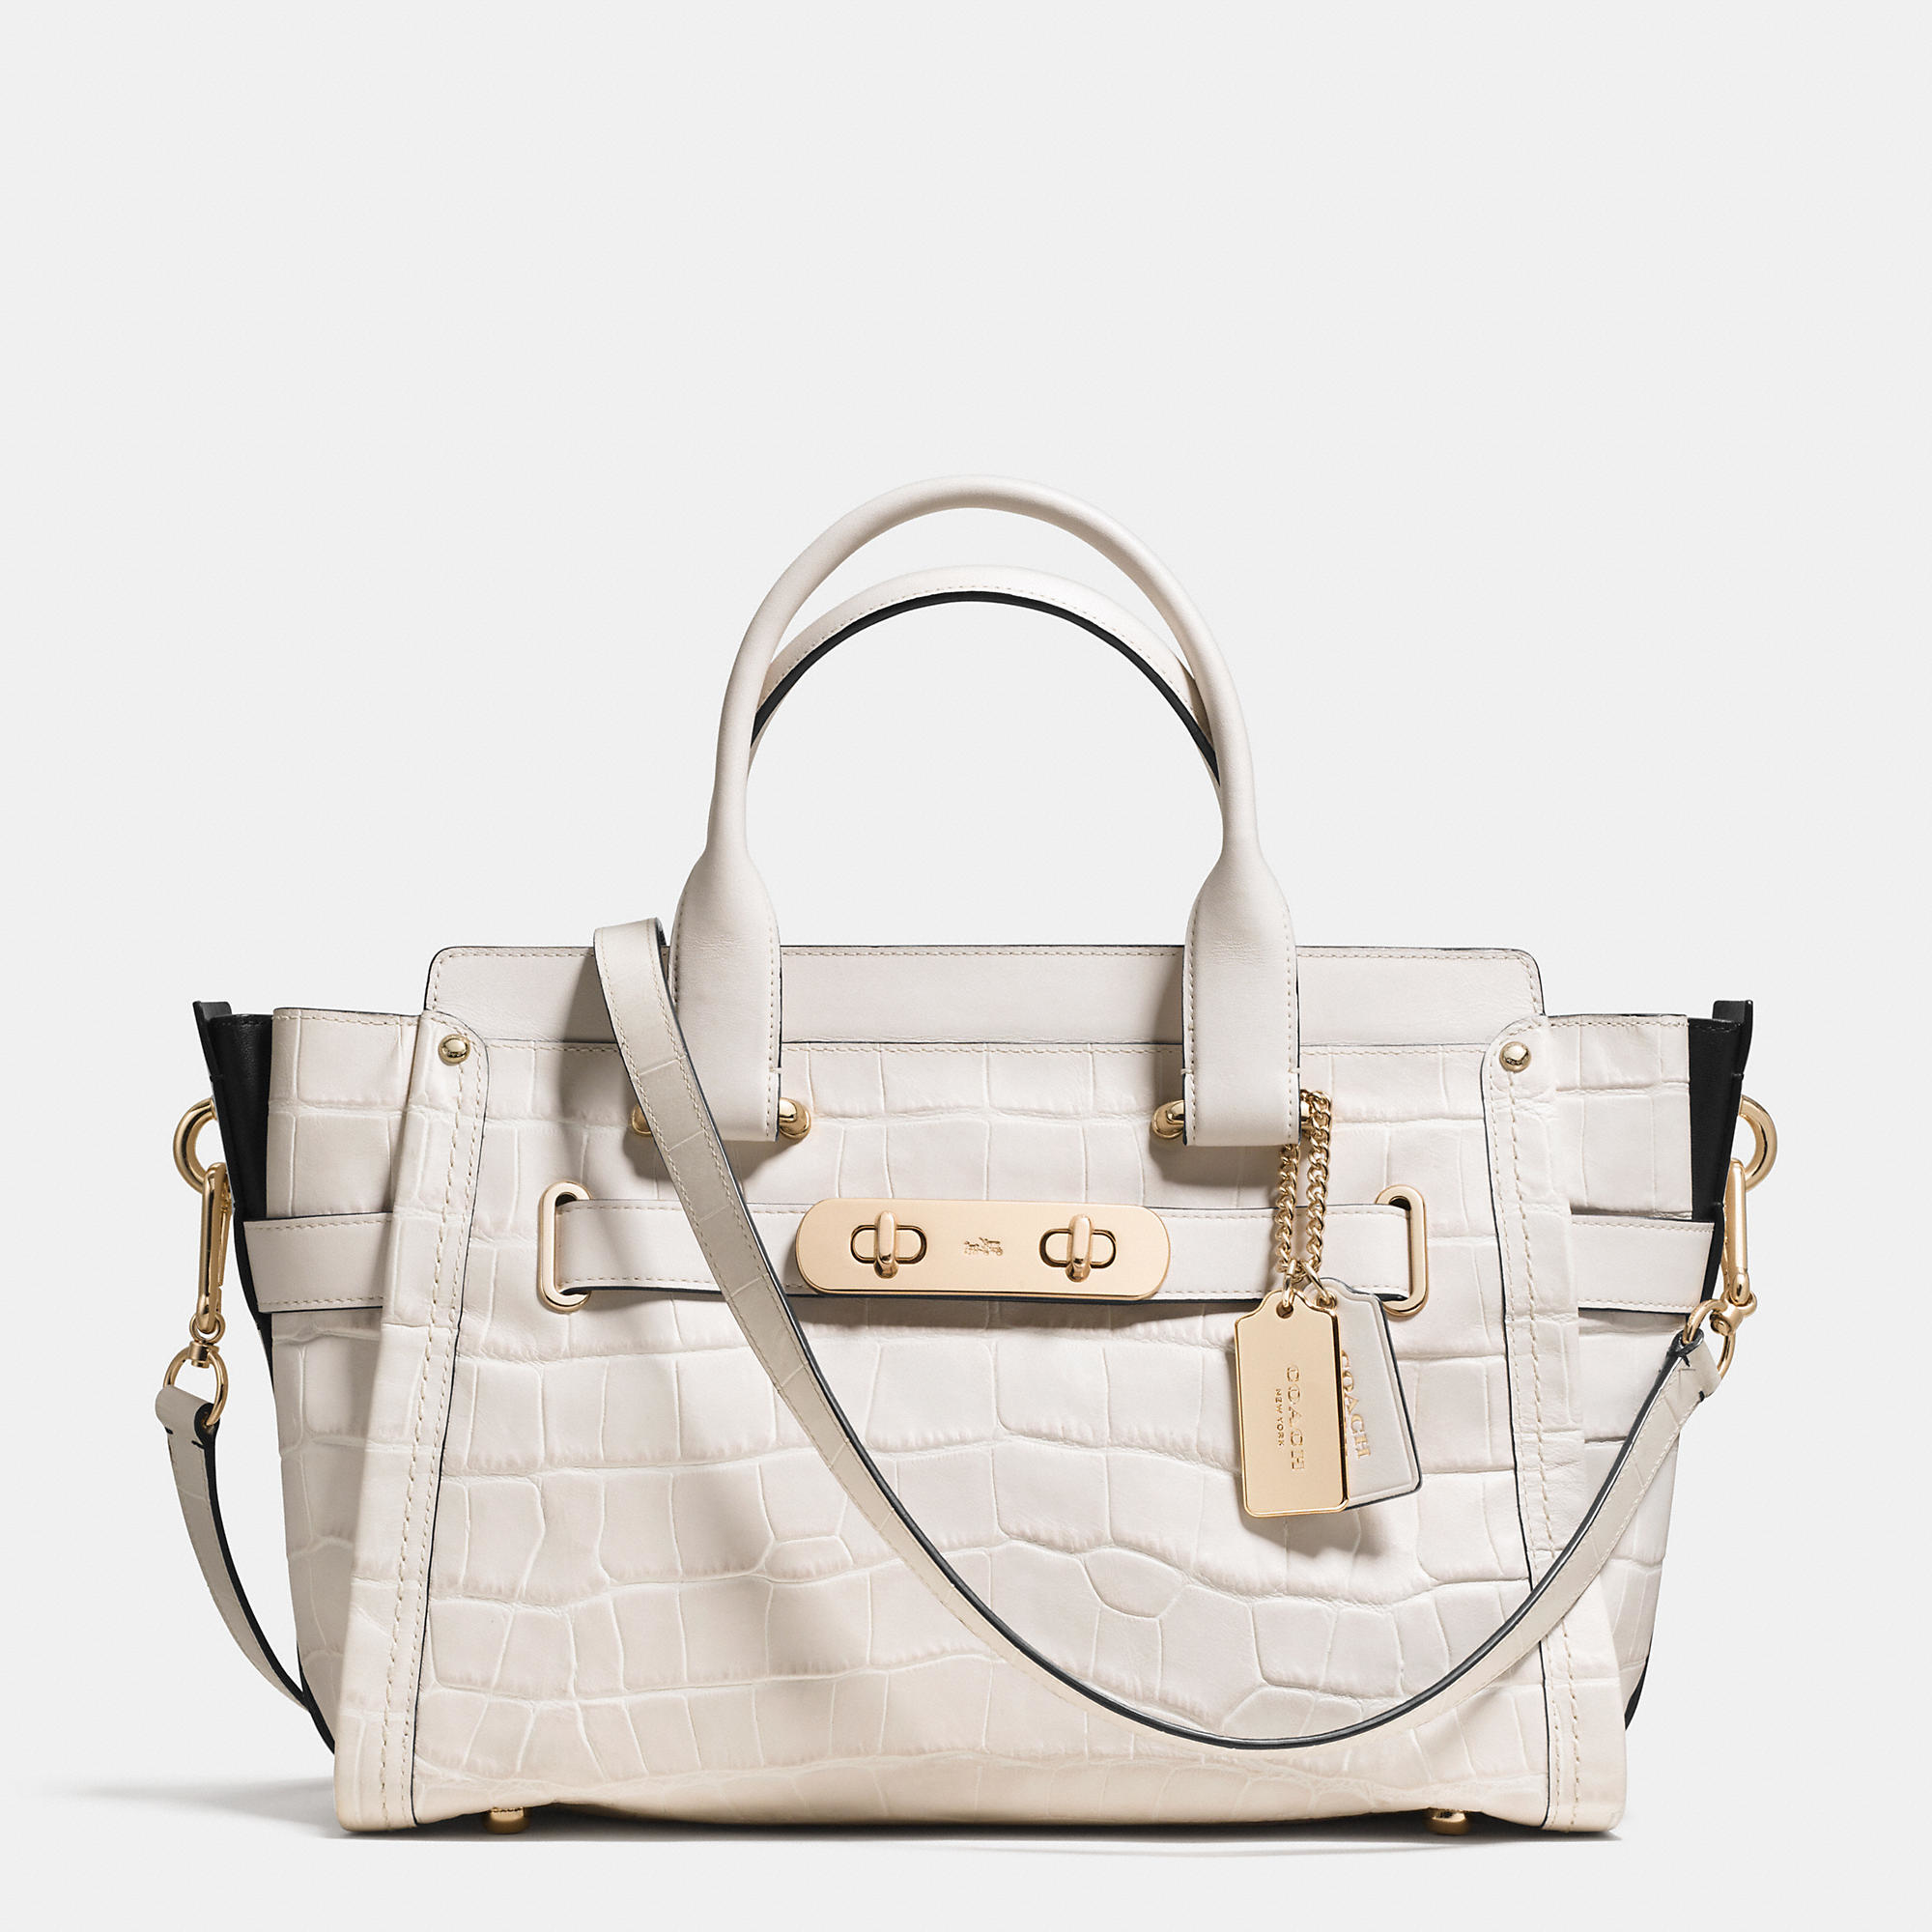 Lyst Coach Swagger In Croc Embossed Leather In Metallic